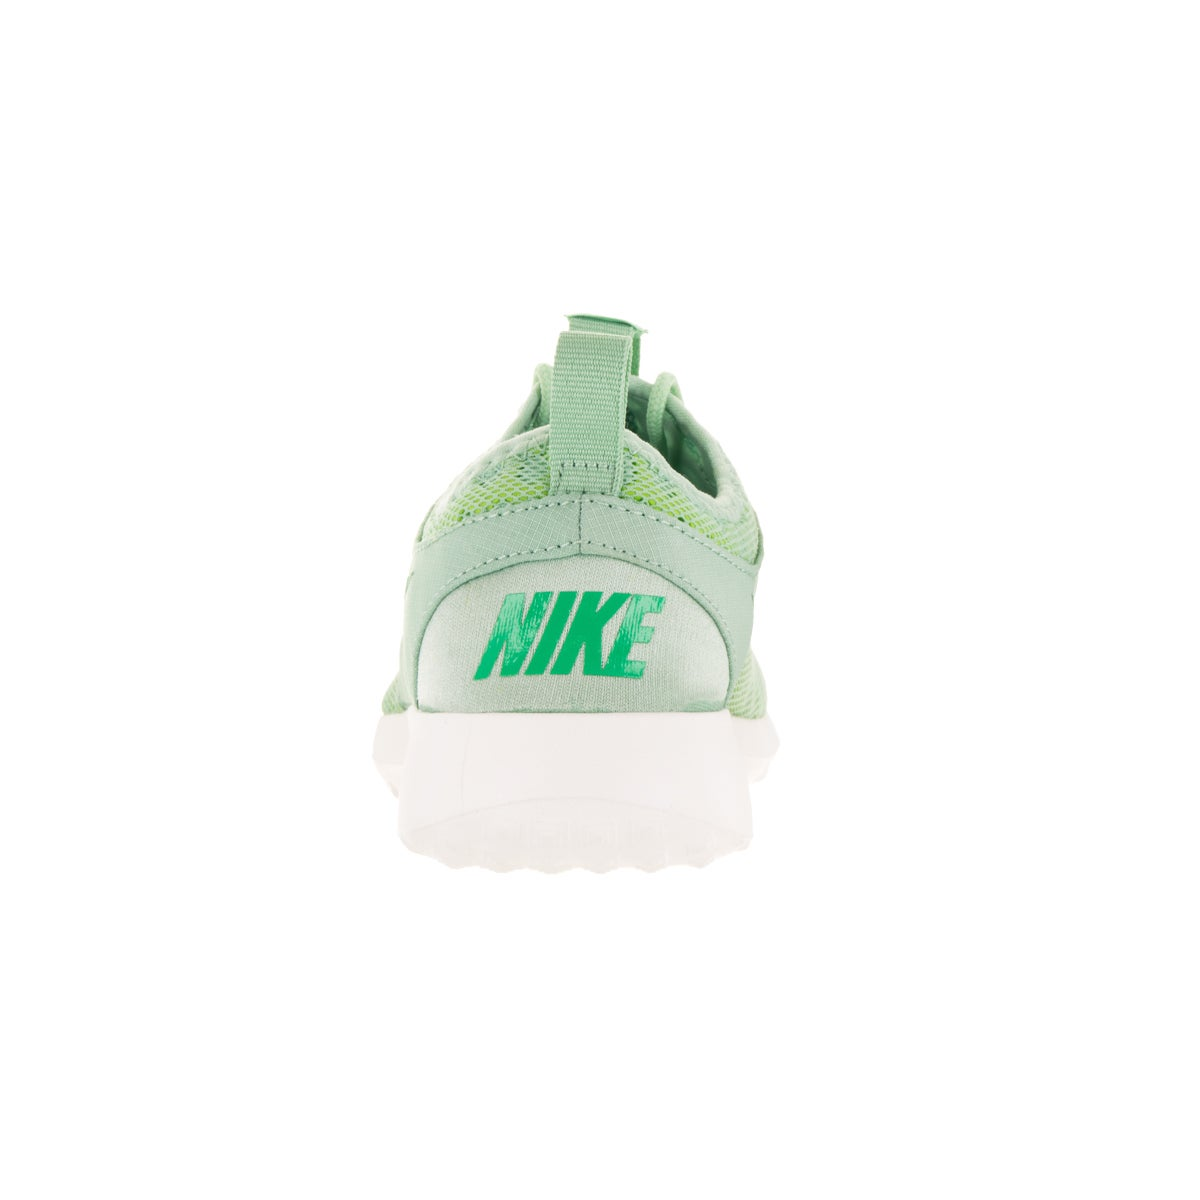 new arrival ab17a 59a4c Shop Nike Women s Juvenate Enamel Green Spring Leaf Running Shoe - Free  Shipping Today - Overstock - 12329057